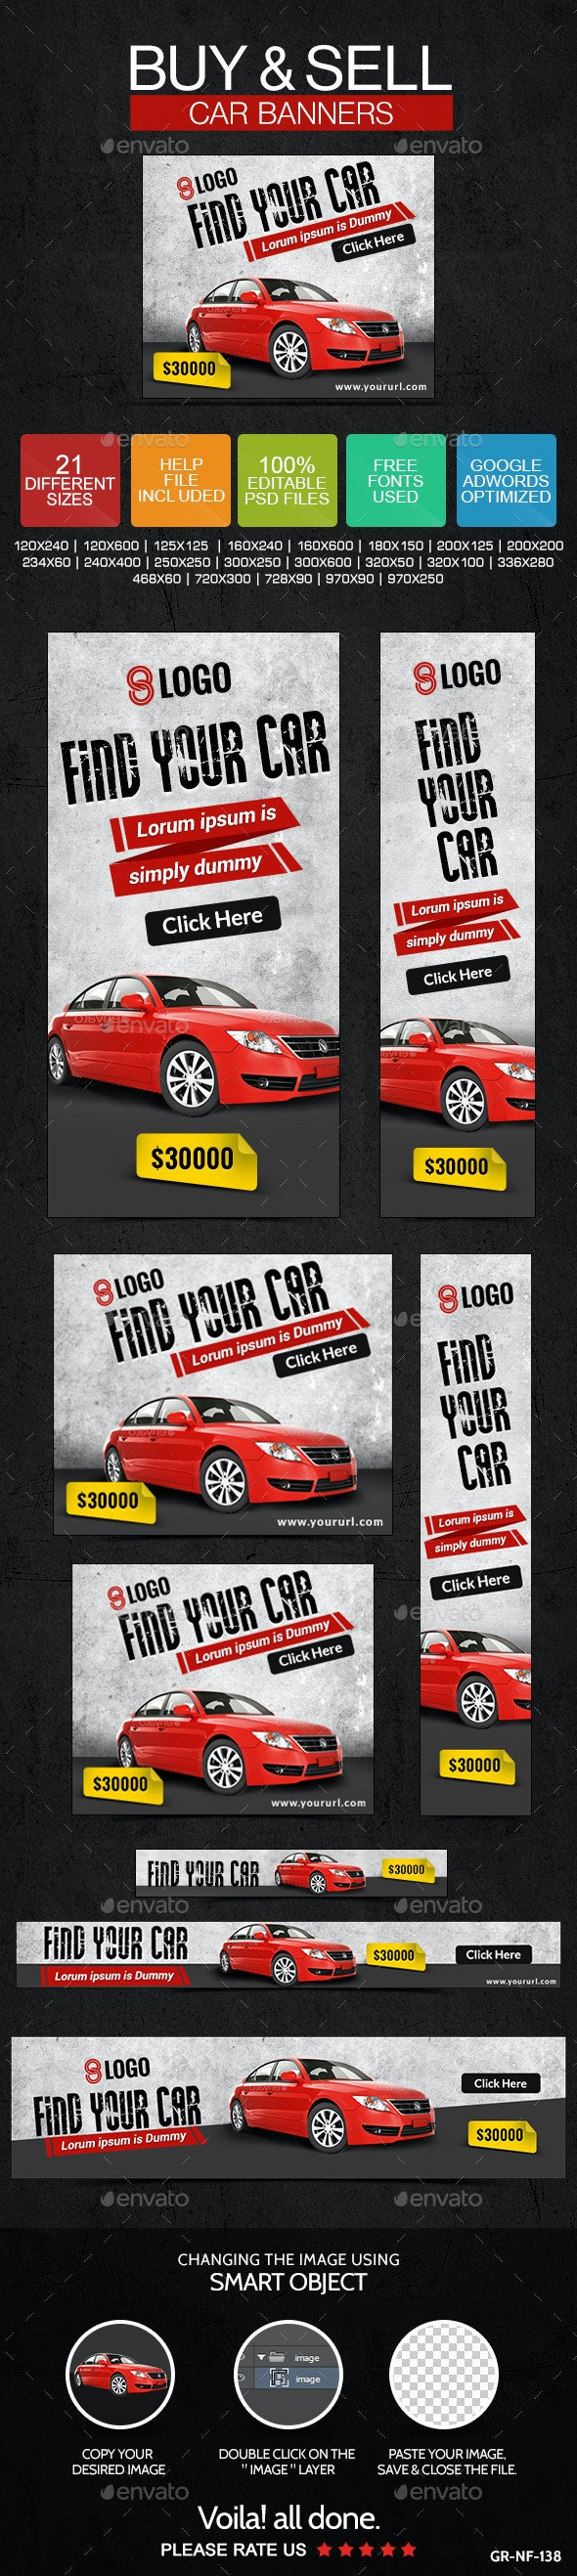 Buy & Sell Cars Banners - Banners & Ads Web Elements